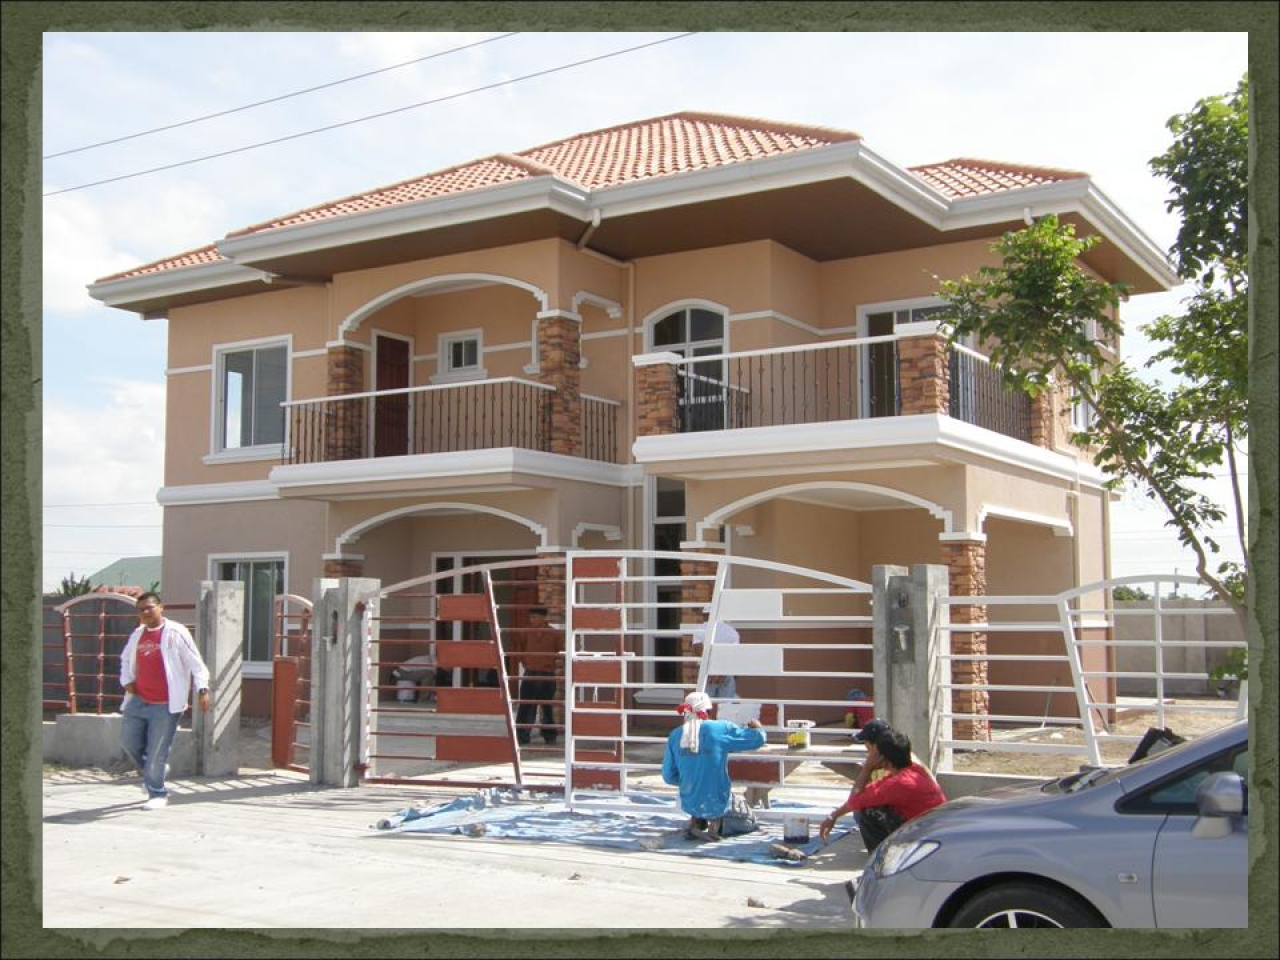 2 Storey House Design Philippines Small 2 Storey House ...